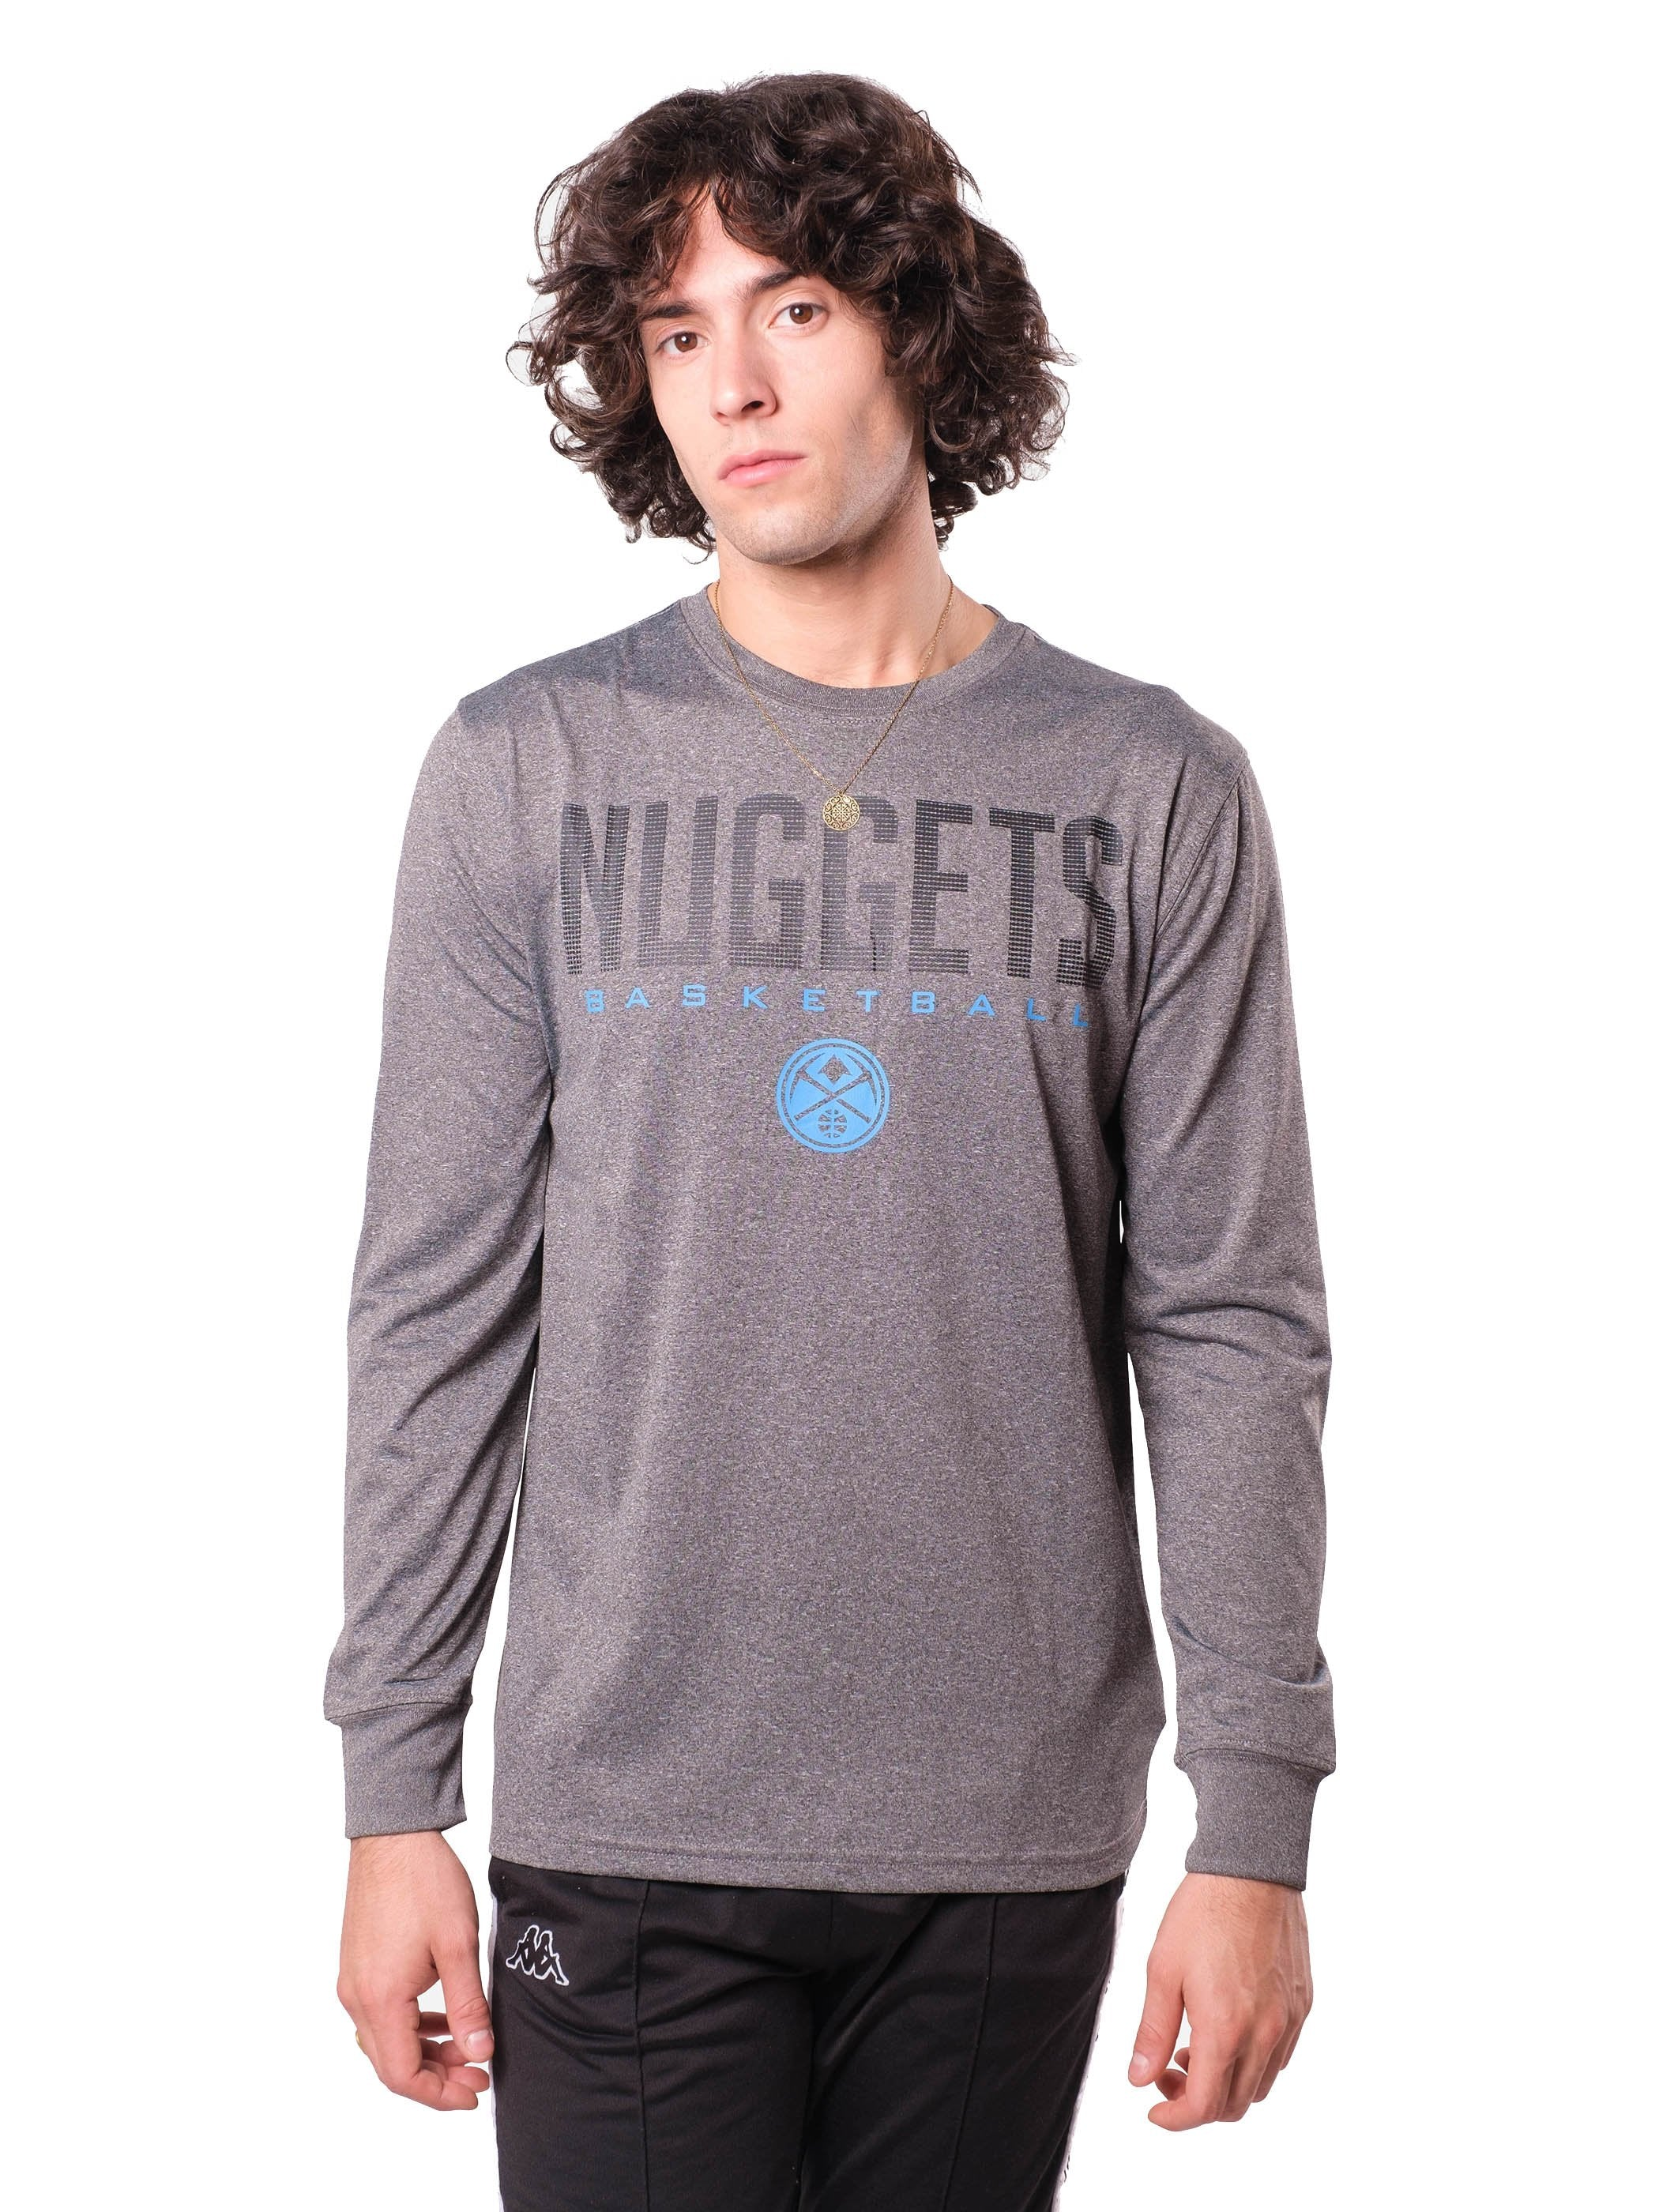 NBA Denver Nuggets Men's Long Sleeve Tee|Denver Nuggets